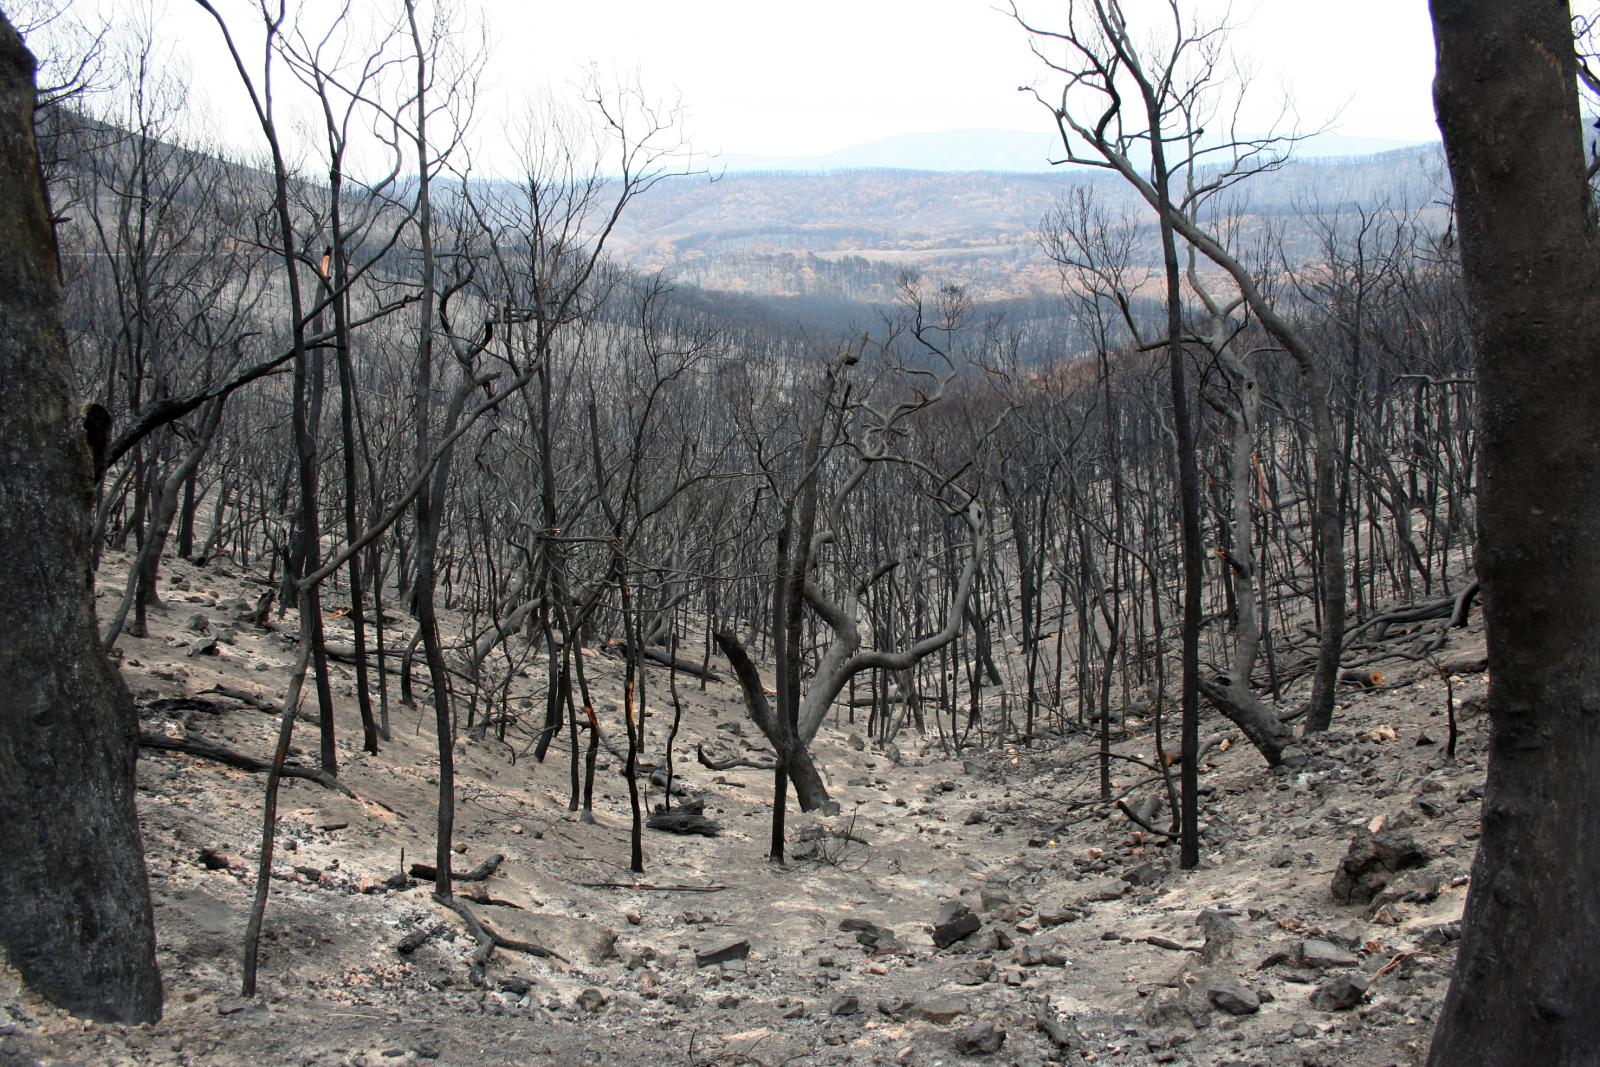 The Kinglake region after the Black Saturday bushfires in 2009